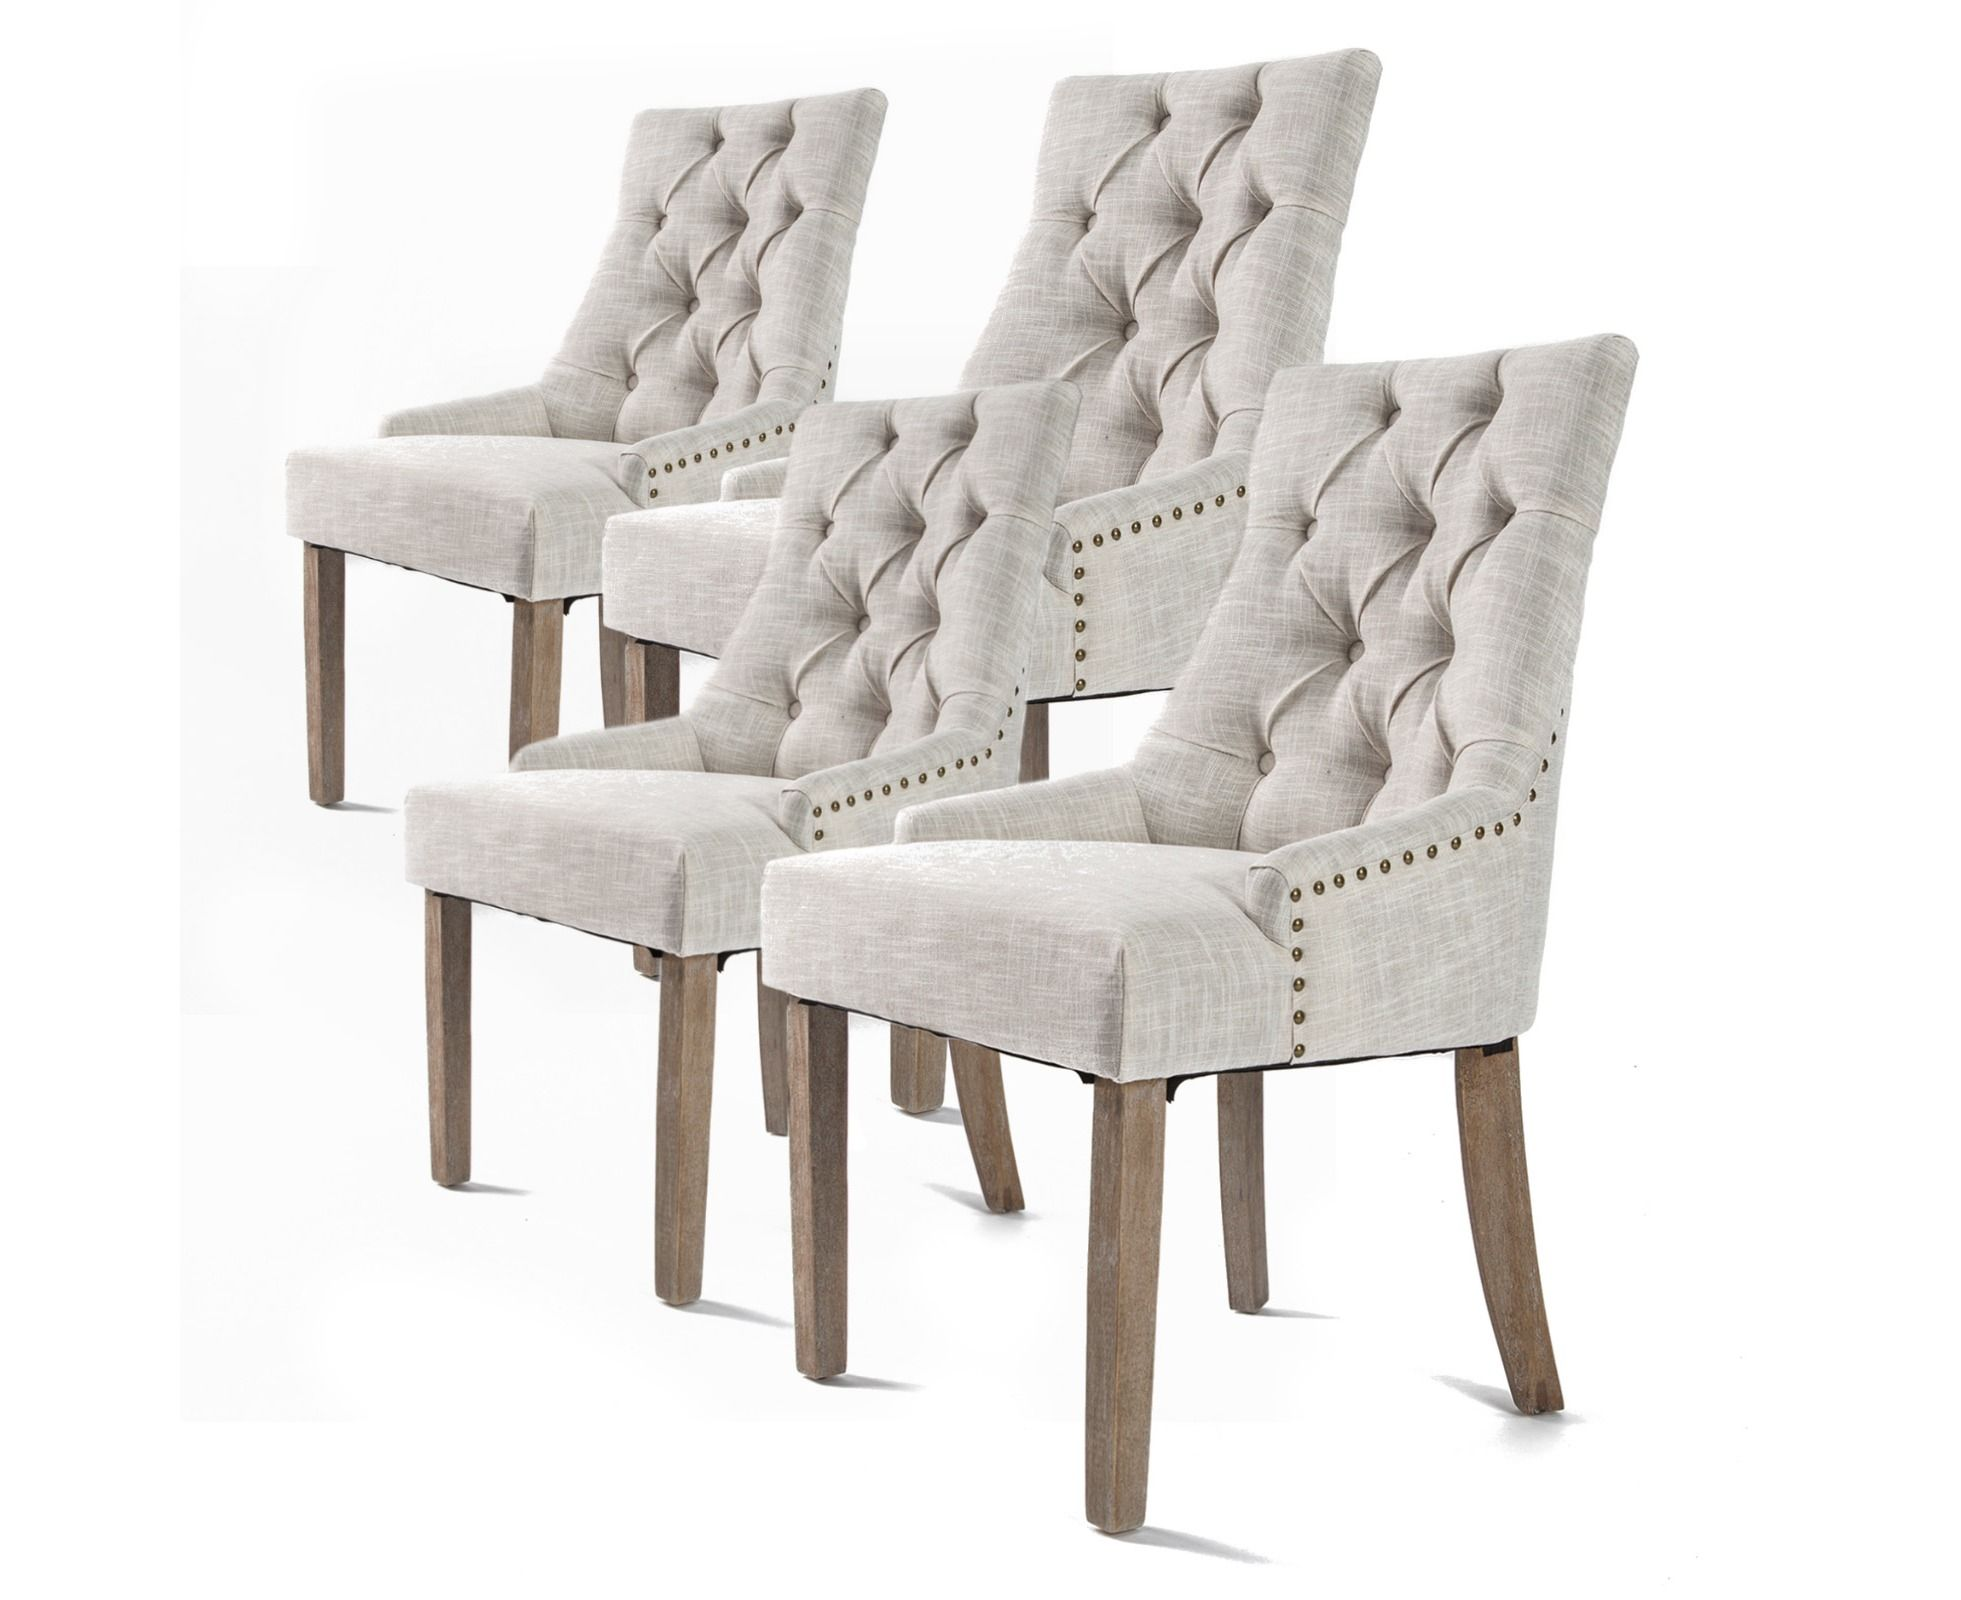 4x French Provincial Dining Chair Oak